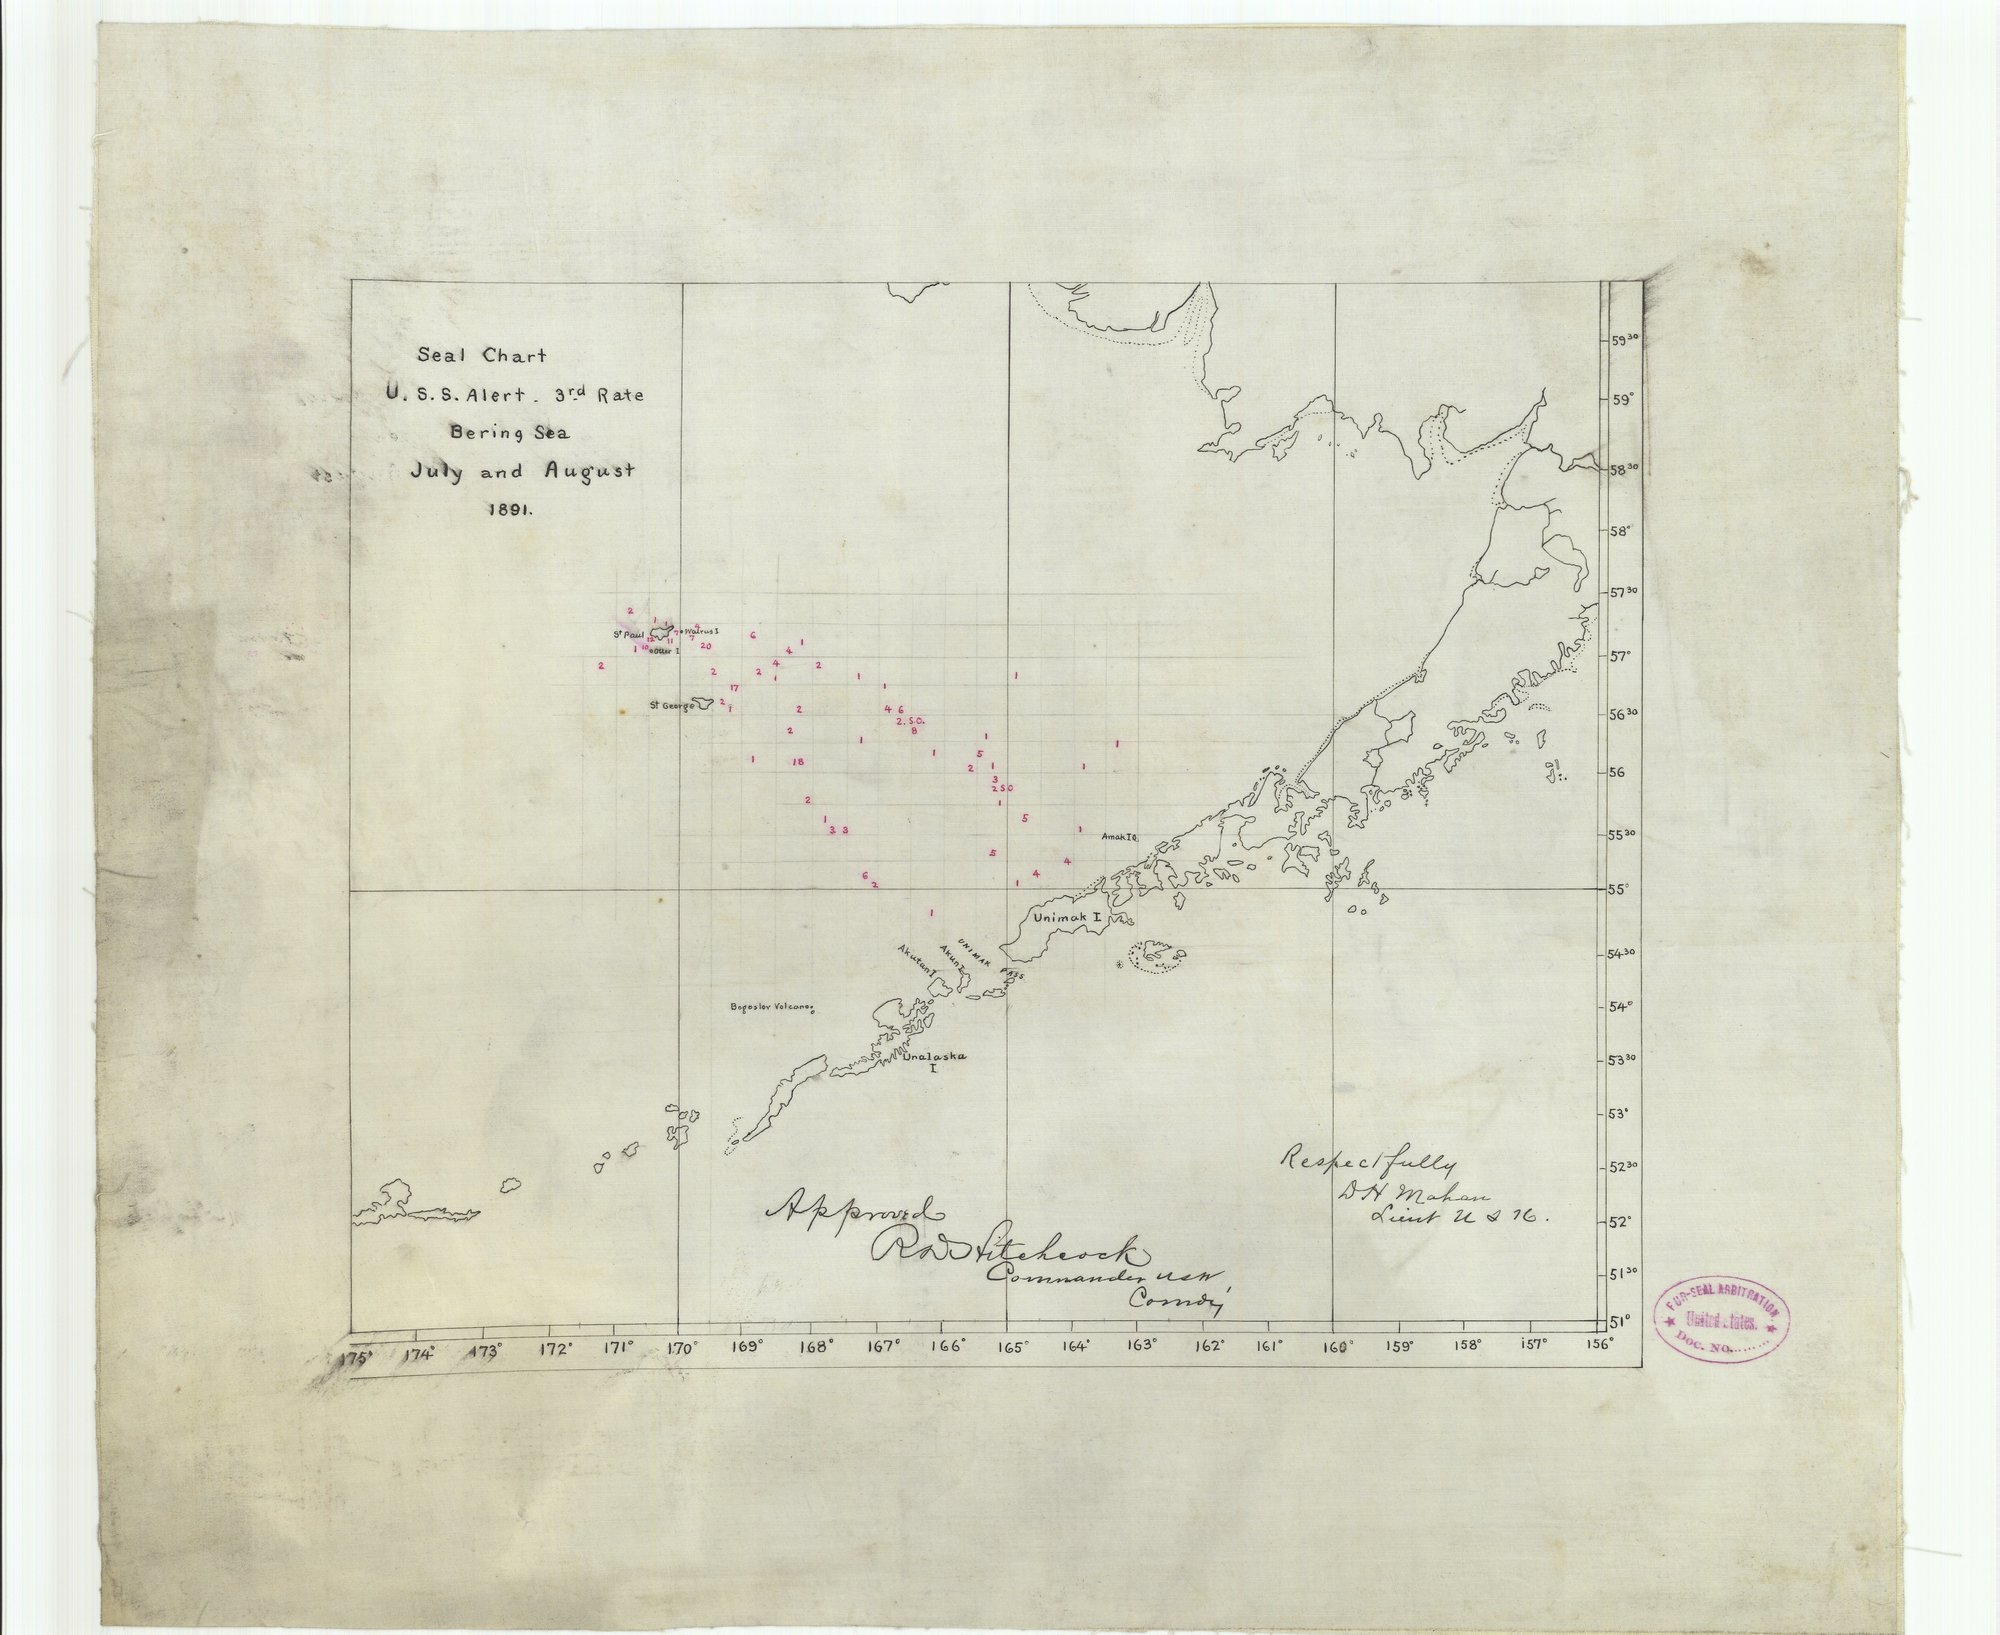 Vintography 8 x 12 inch 1891 US Old Nautical map Drawing Chart Seal Chart U. S. S. Alert 3rd Rate Bering Sea July August 1891 from NOAA x5086